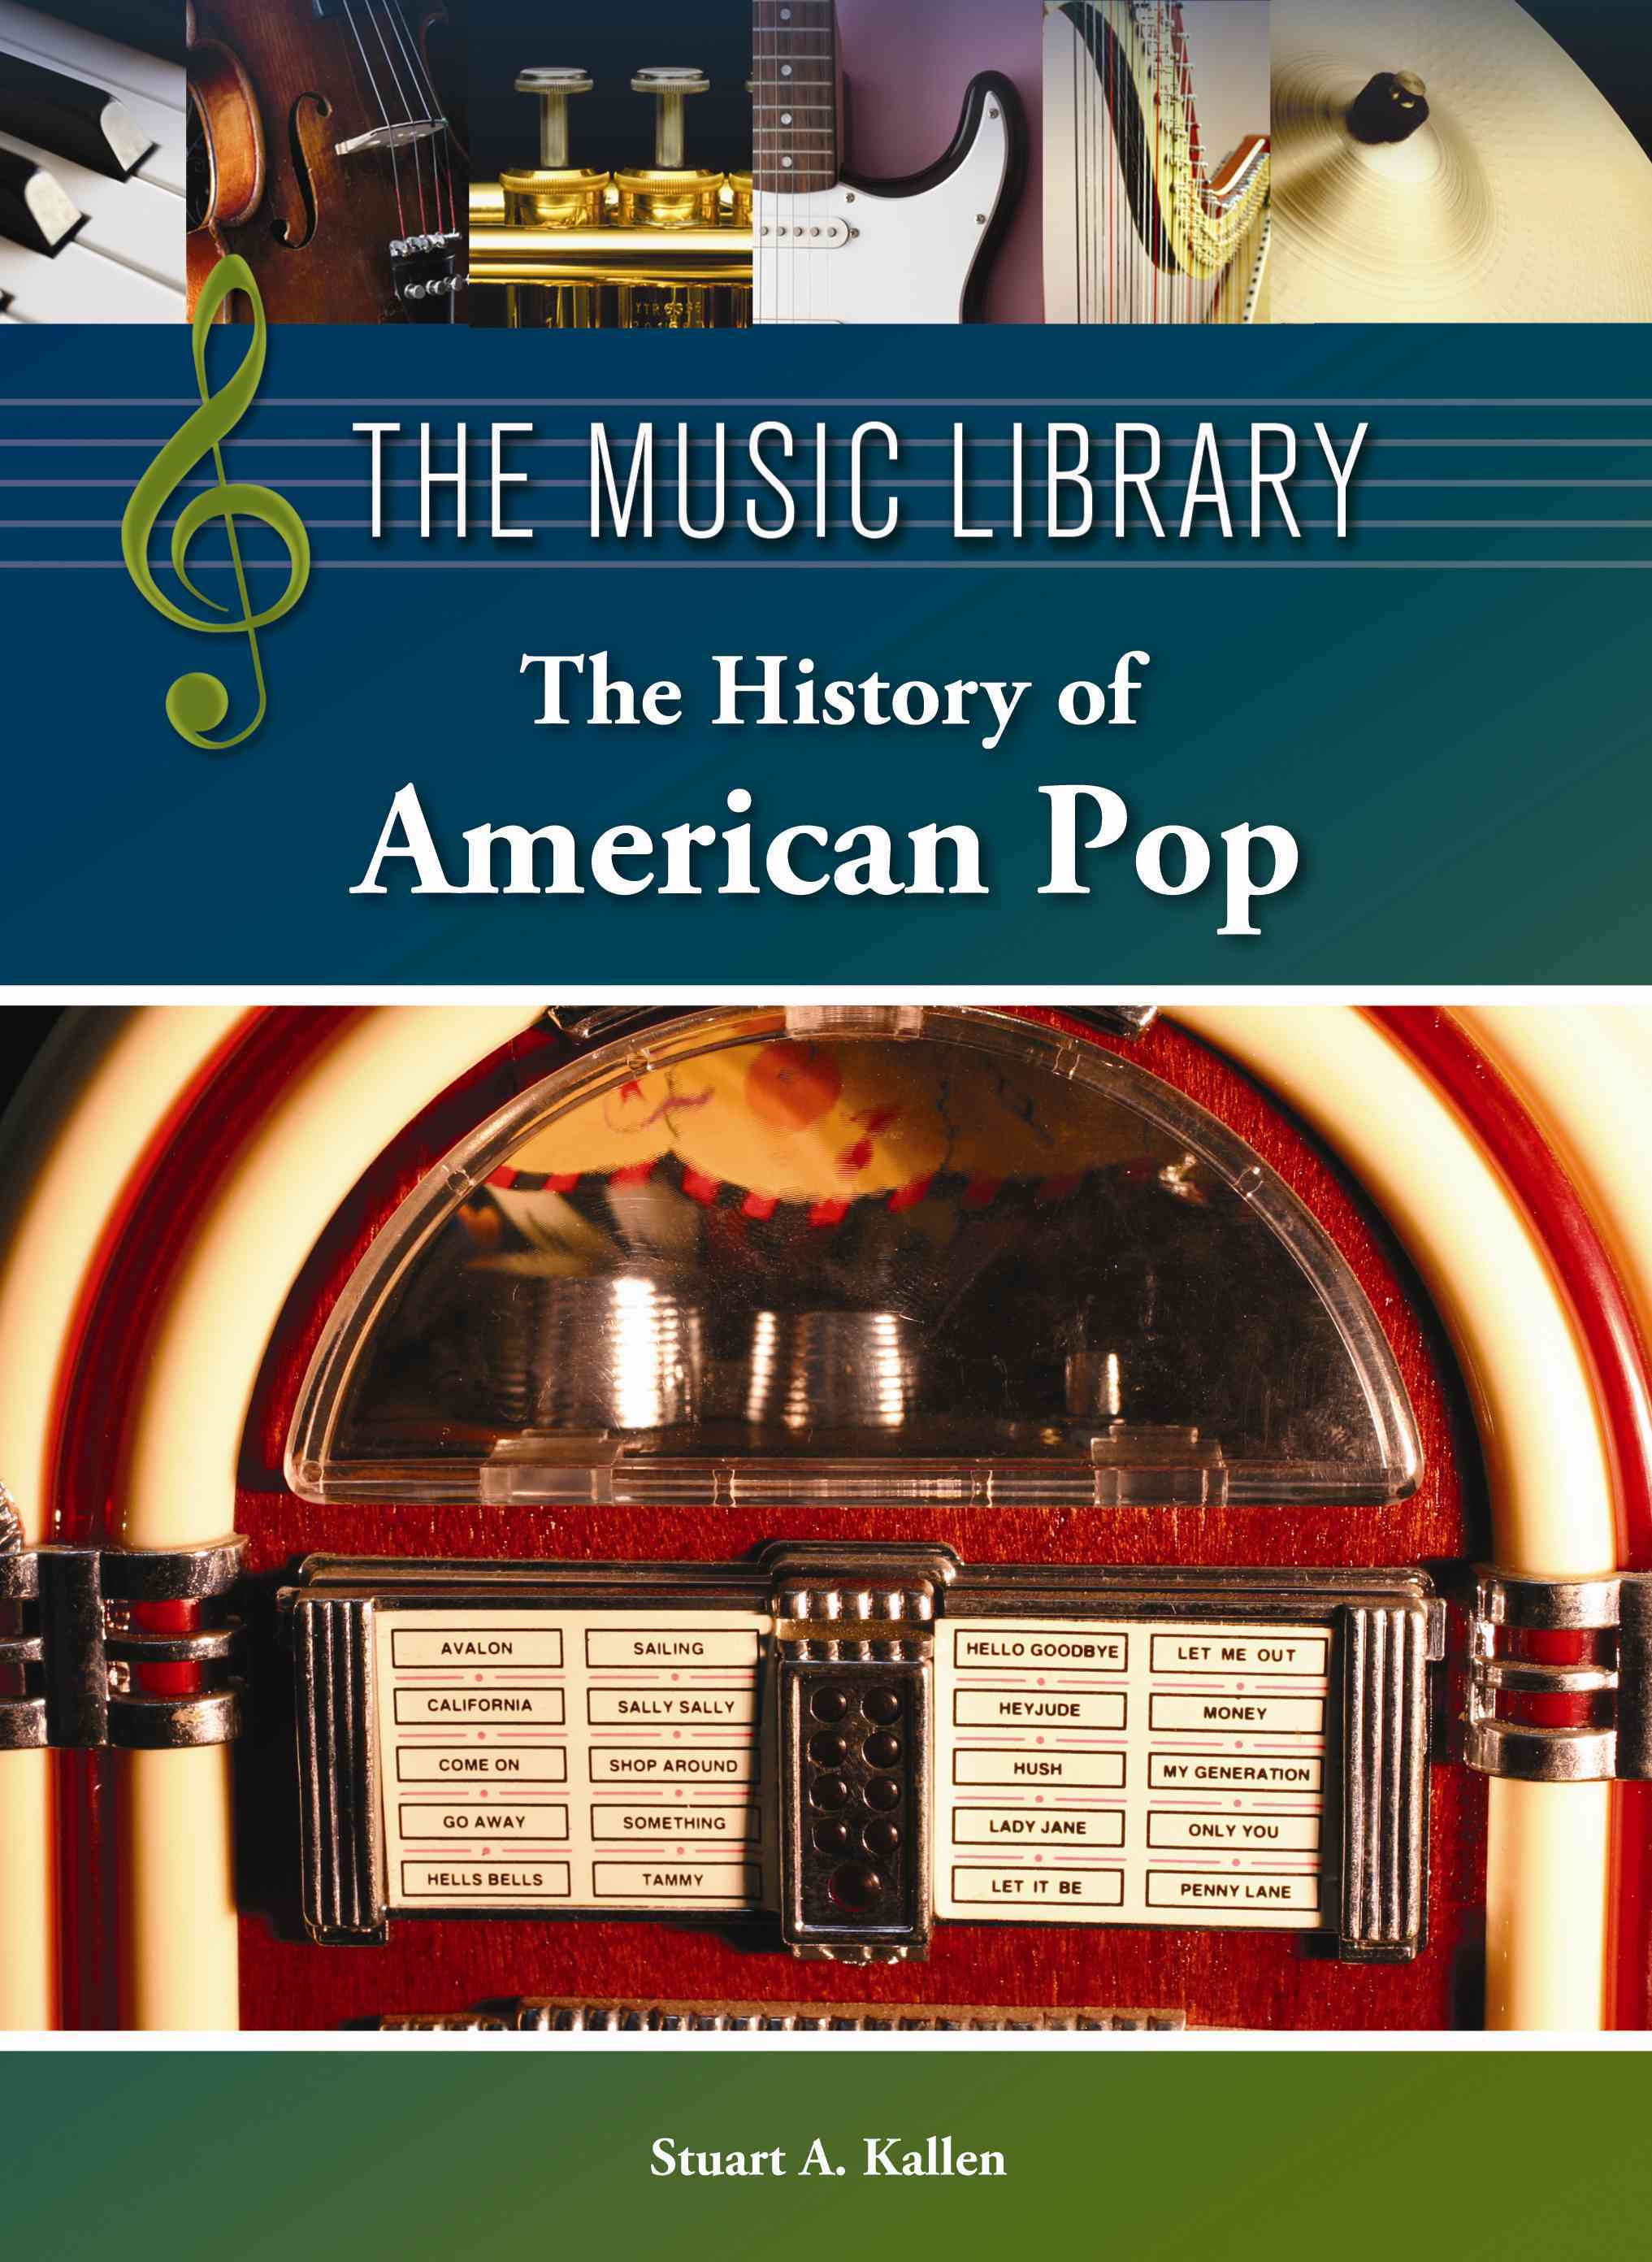 The History of American Pop By Edt (NA)